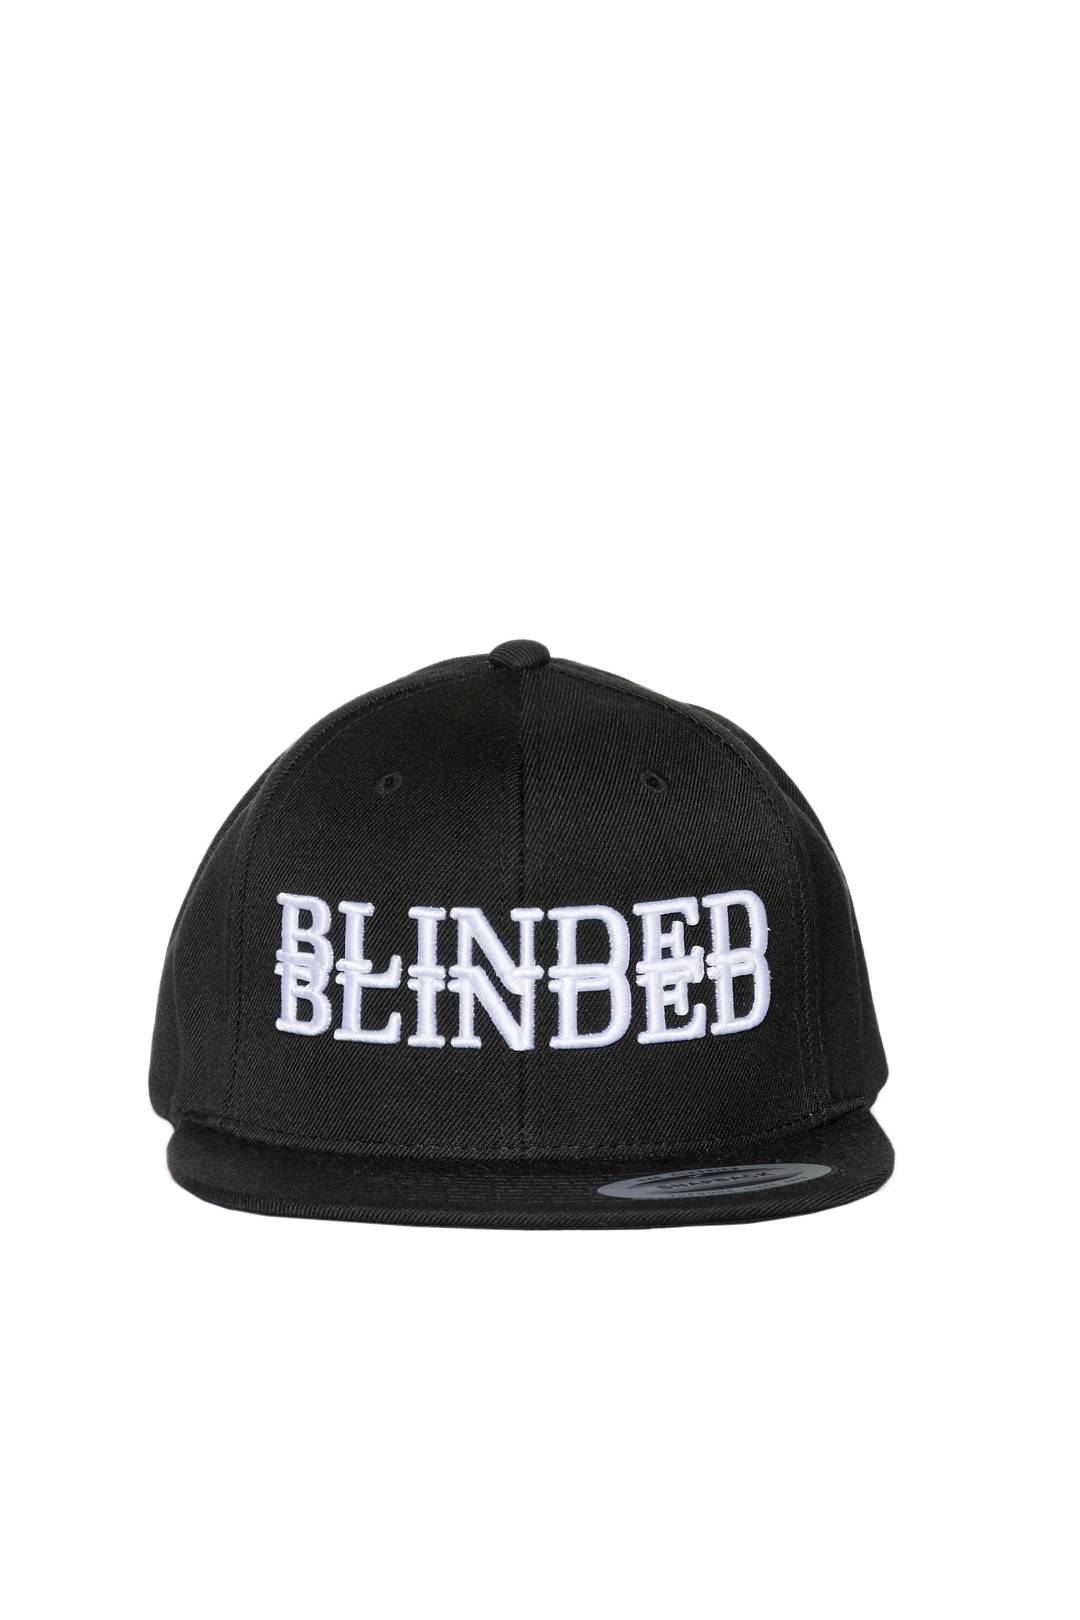 "BECK TO BECK Cap ""BLINDED"""